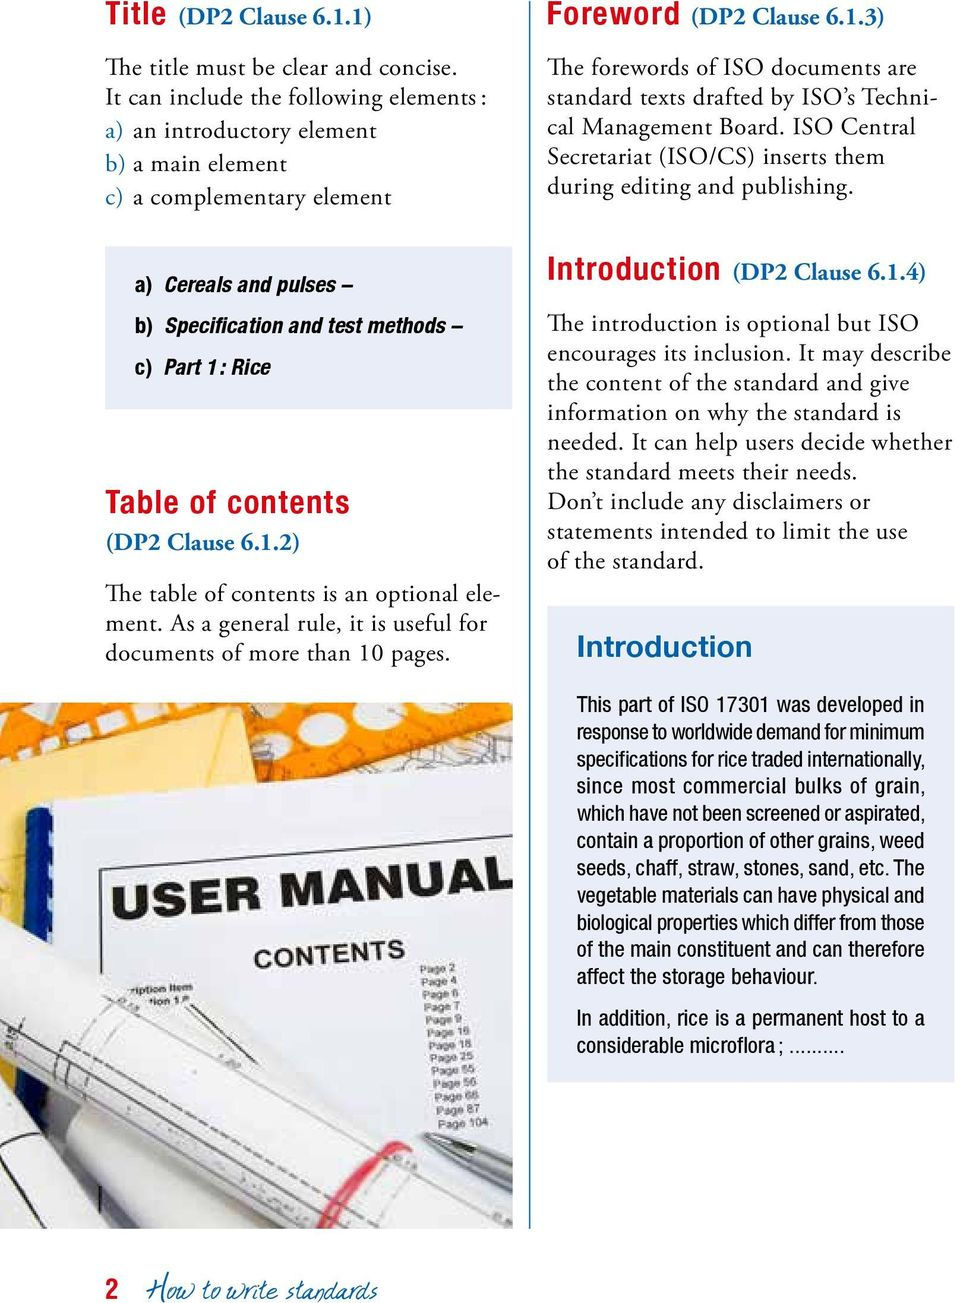 As a general rule, it is useful for documents of more than 10 pages. Introduction (DP2 Clause 6.1.4) The introduction is optional but ISO encourages its inclusion.